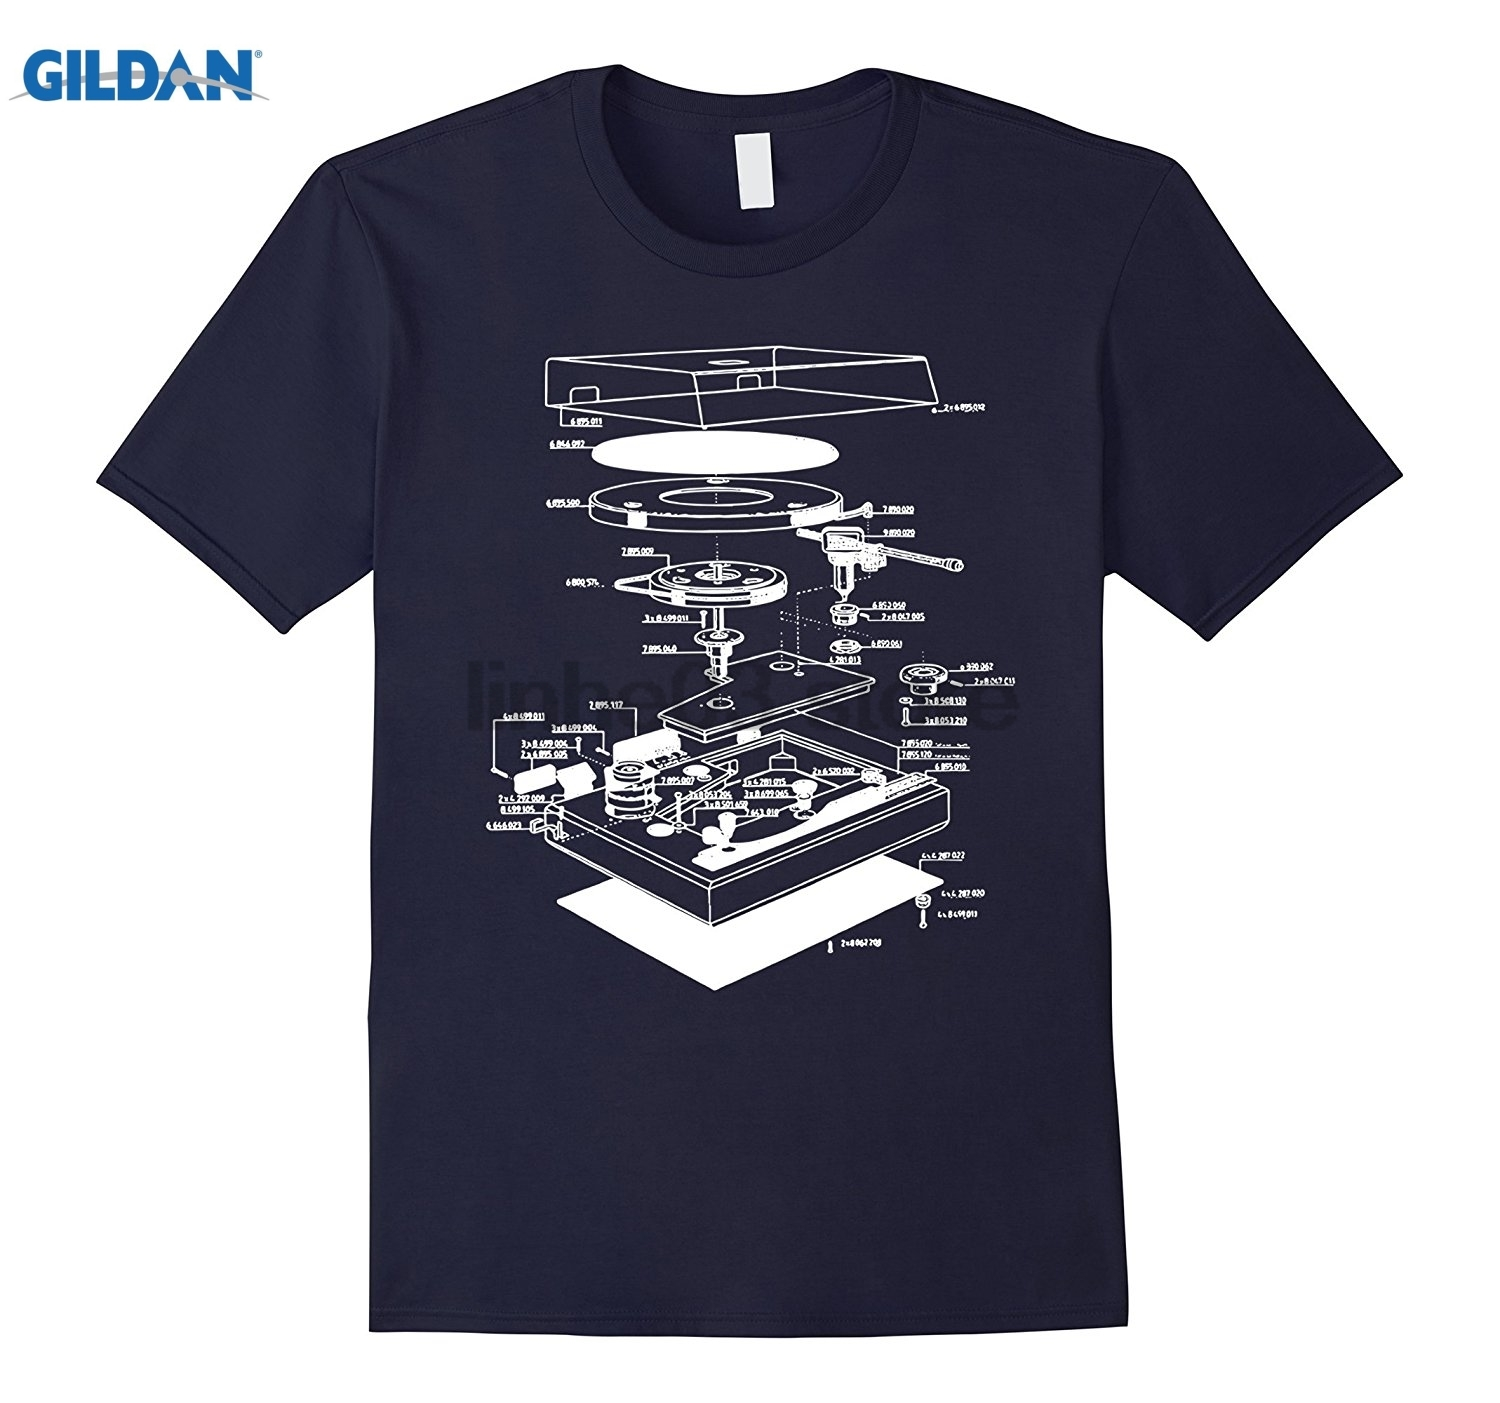 GILDAN Turn table shirt - dj shirt - turn table schematic dress T-shirt sunglasses women T-shirt